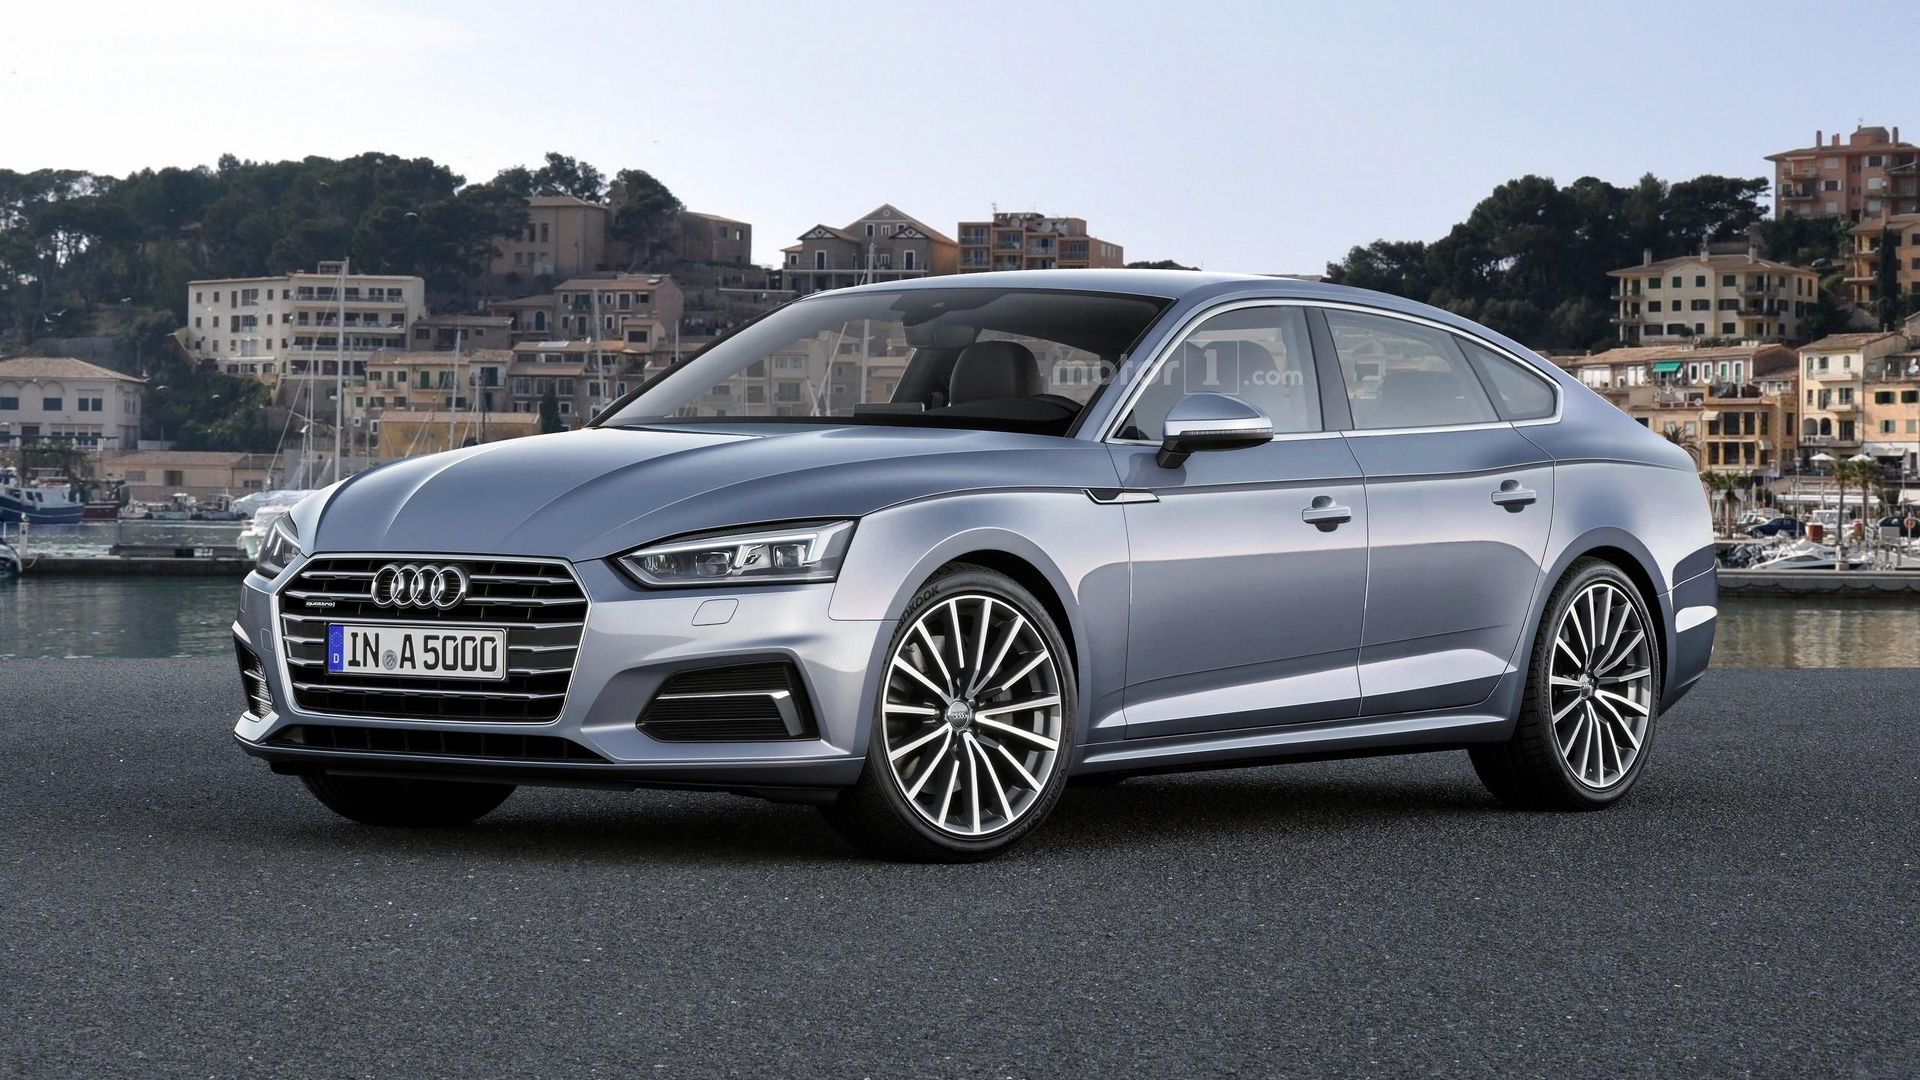 2018 audi a5 sportback render previews plausible future. Black Bedroom Furniture Sets. Home Design Ideas